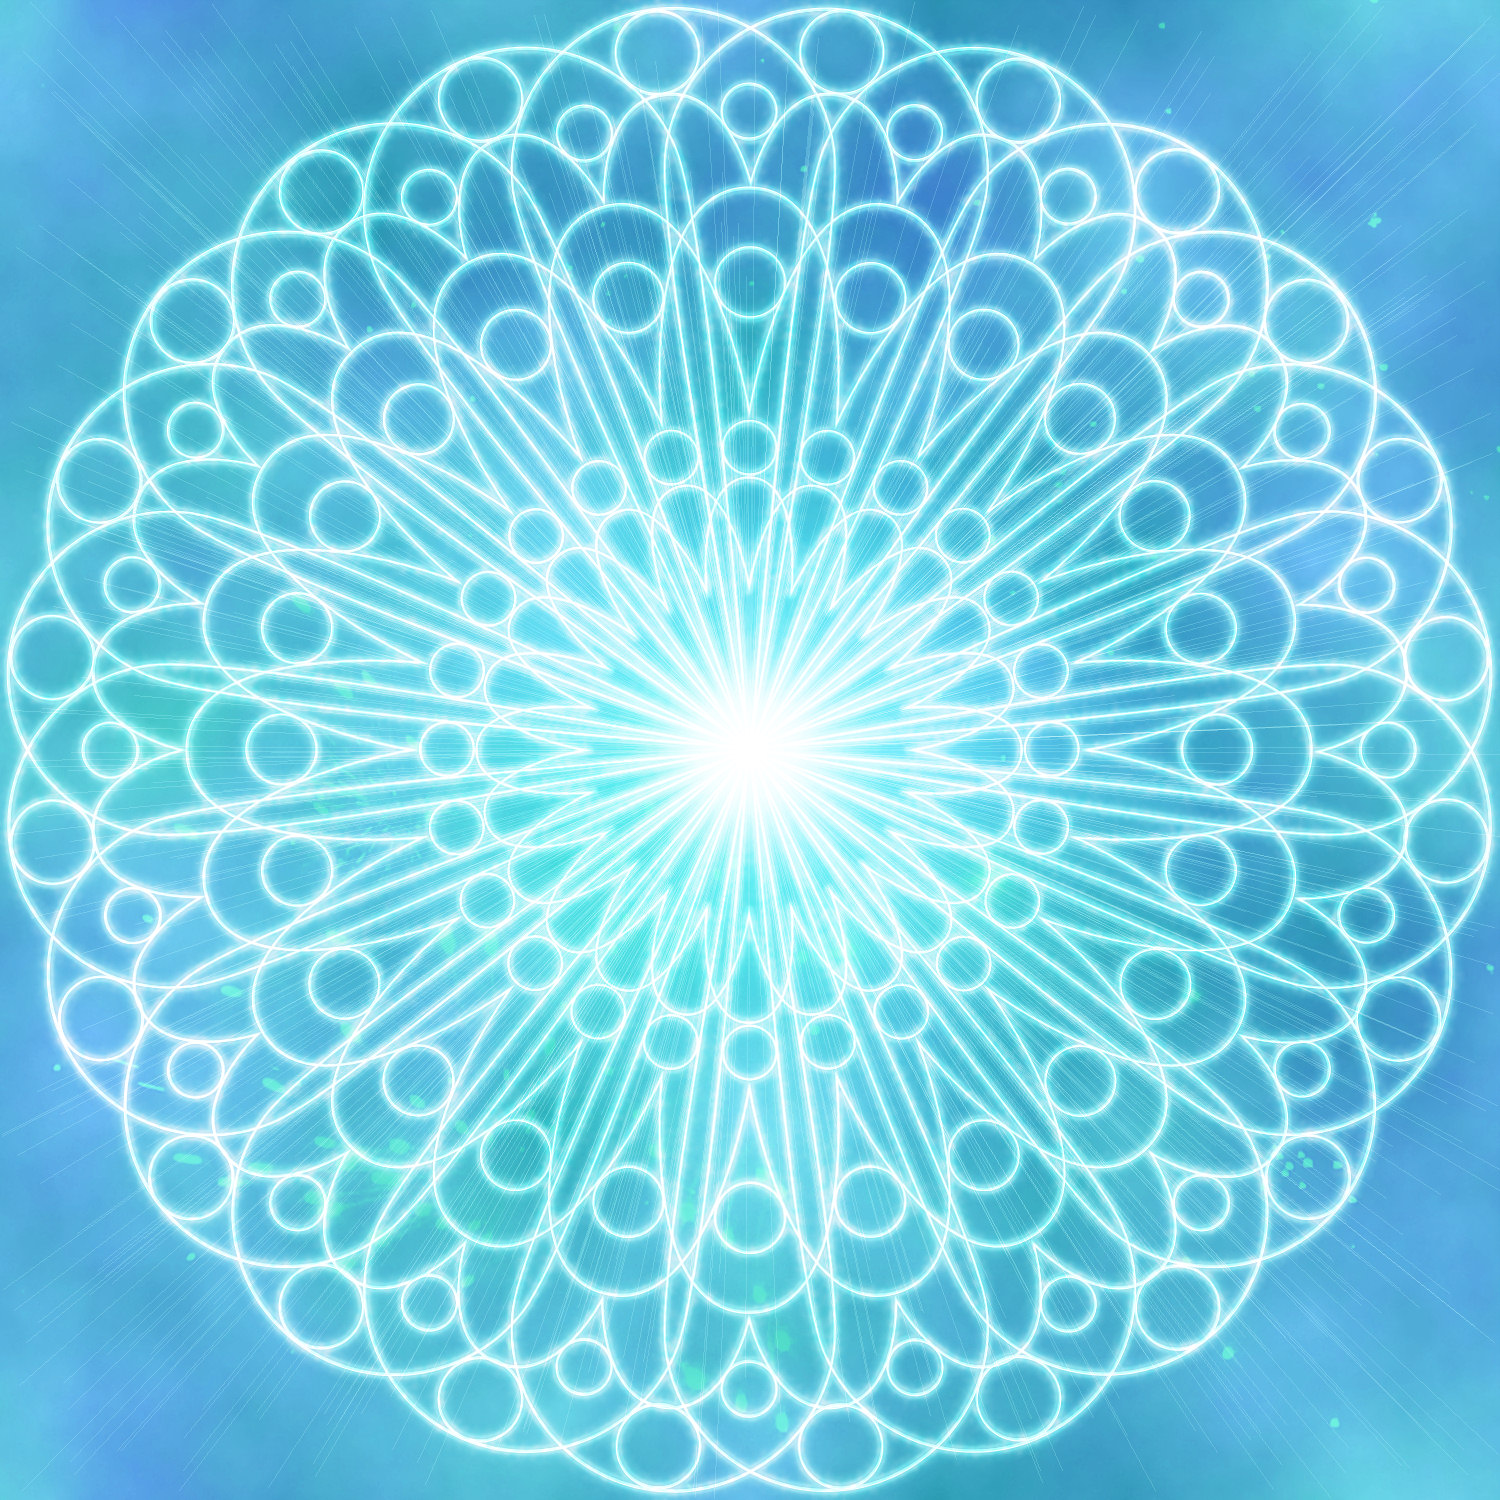 Mandala of light